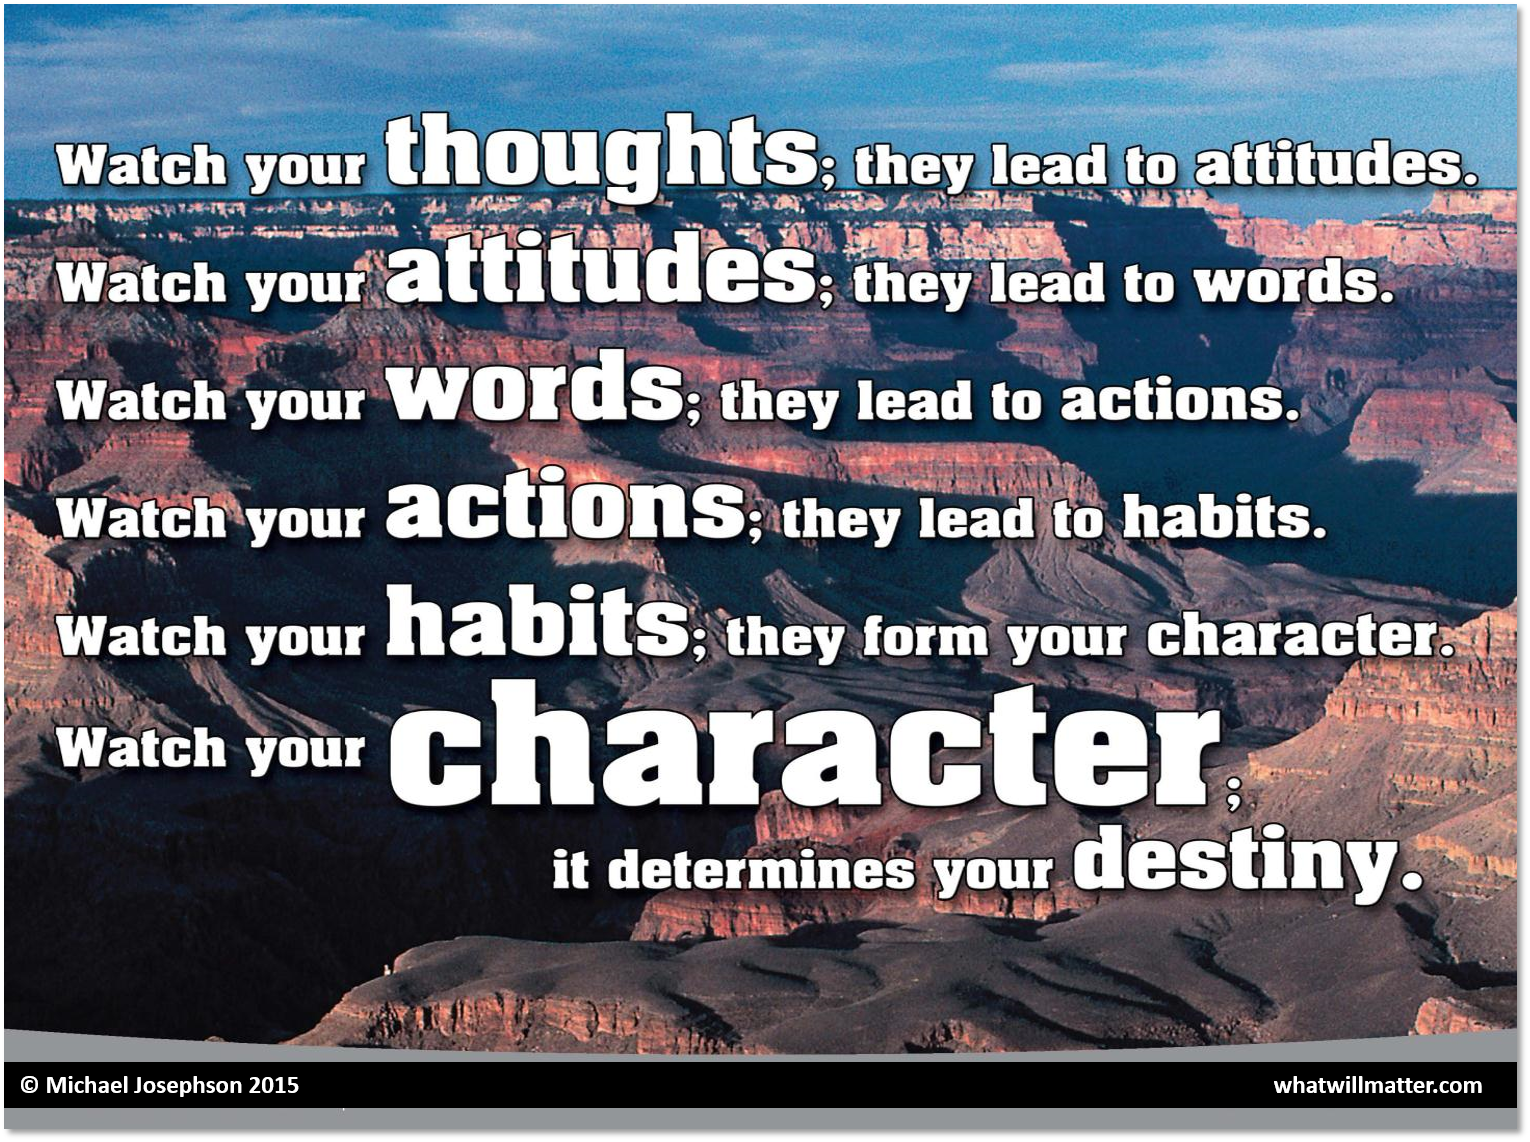 greatest quotes on character reputation and character education character destiny